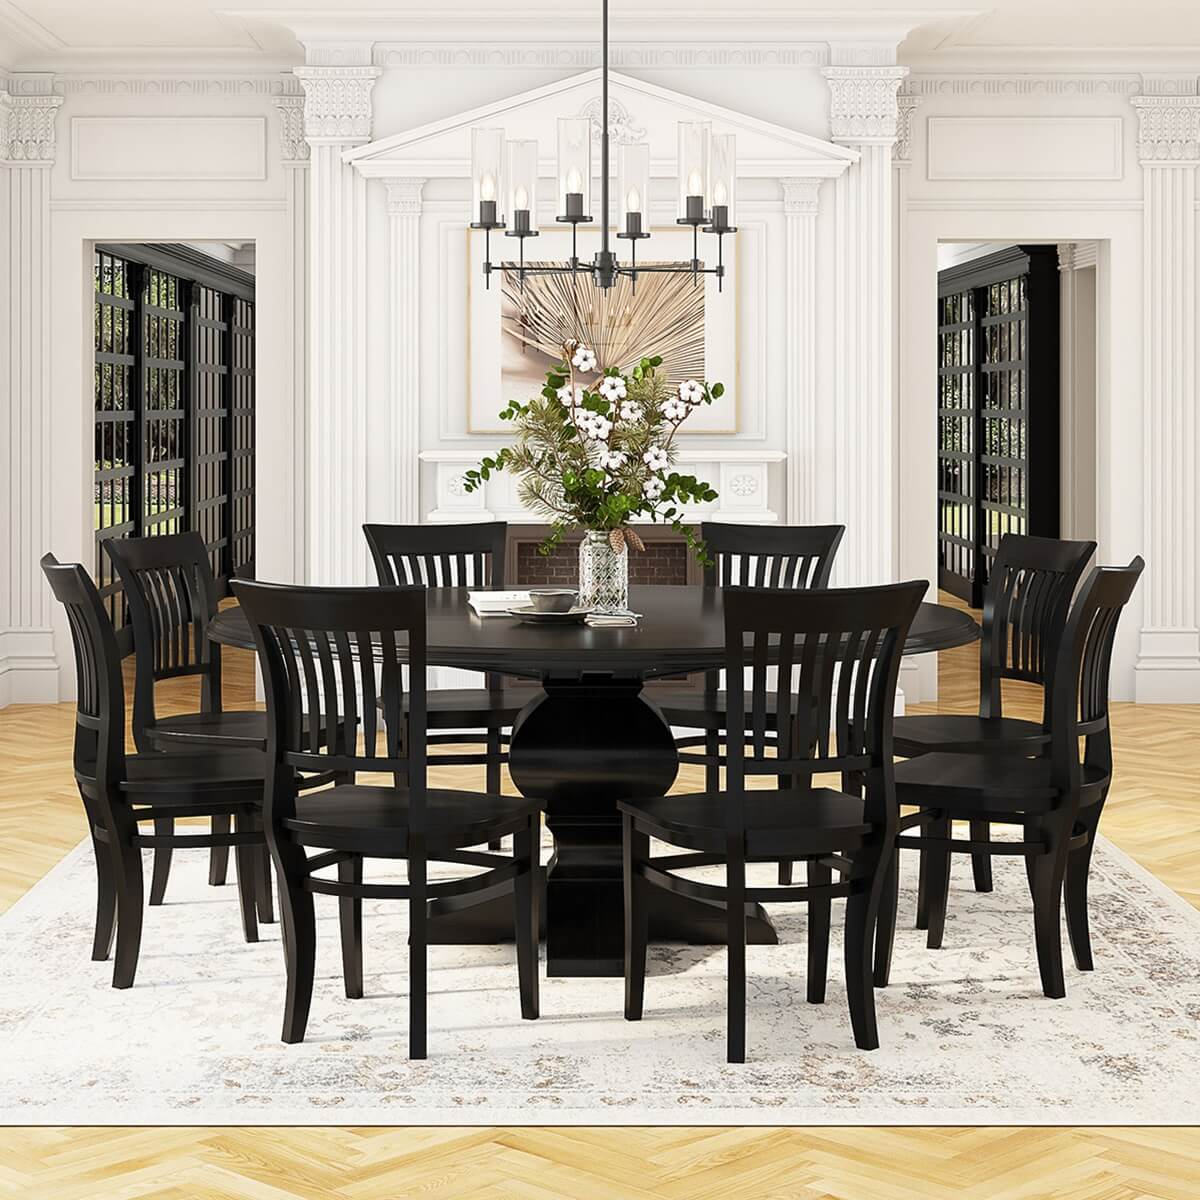 Wooden Dining Table Set: Sierra Nevada Large Round Rustic Solid Wood Dining Table